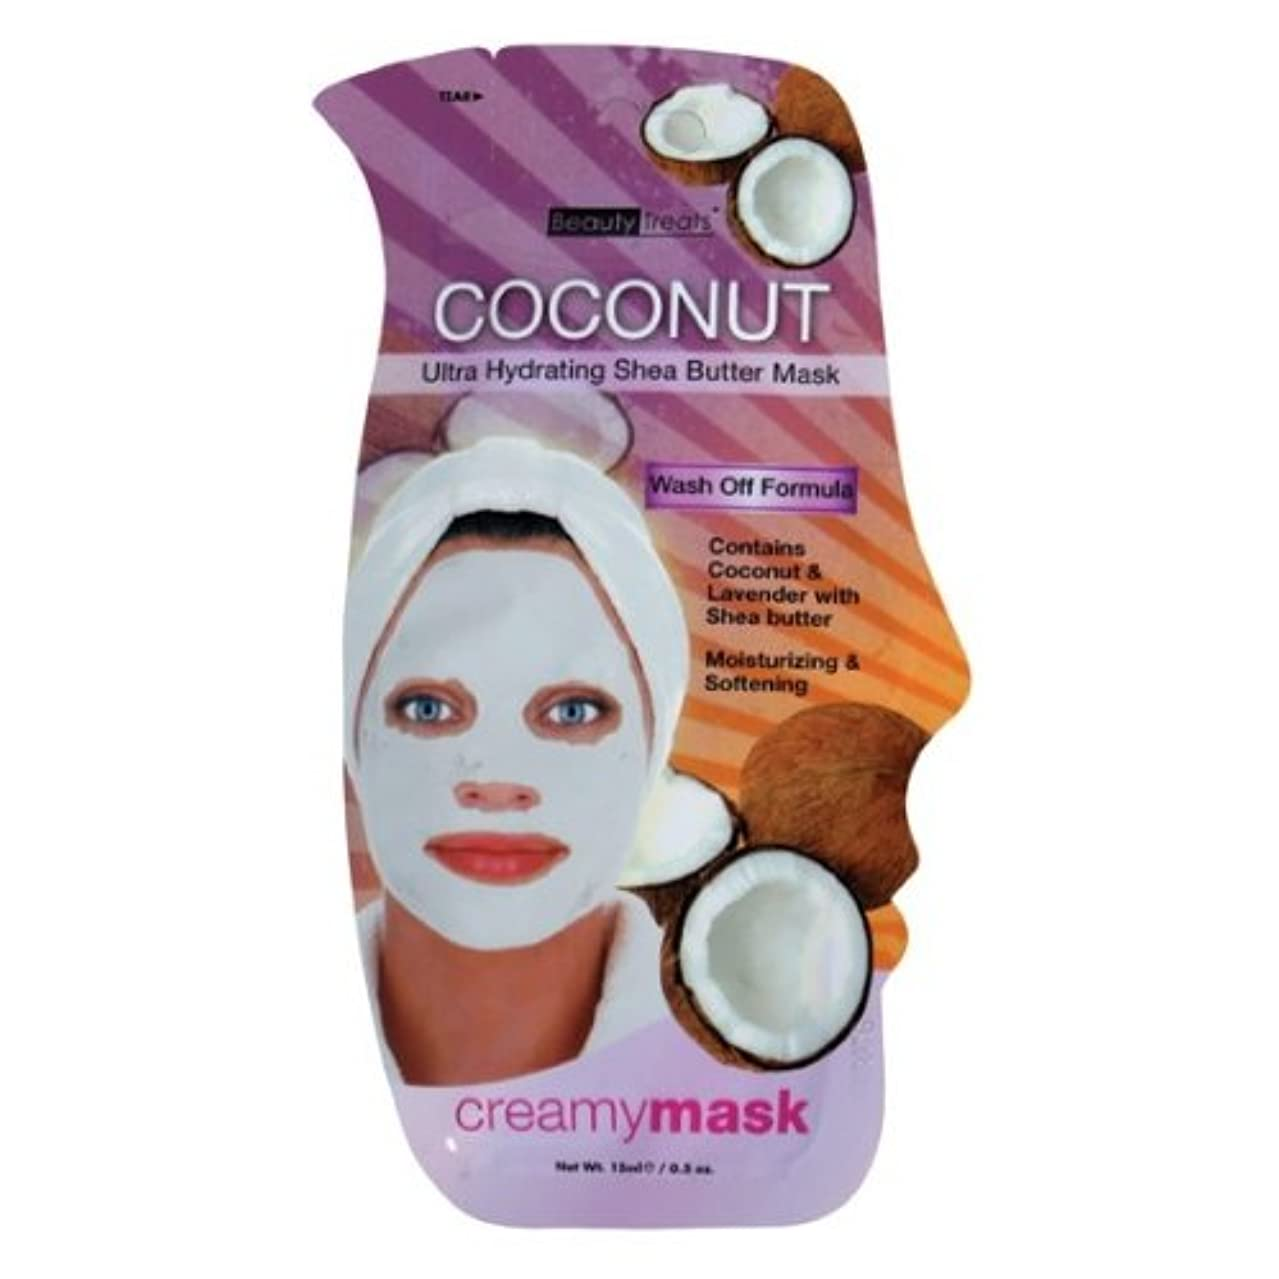 確立事件、出来事ウィンク(3 Pack) BEAUTY TREATS Coconut Ultra Hydrating Shea Butter Mask - Coconut (並行輸入品)